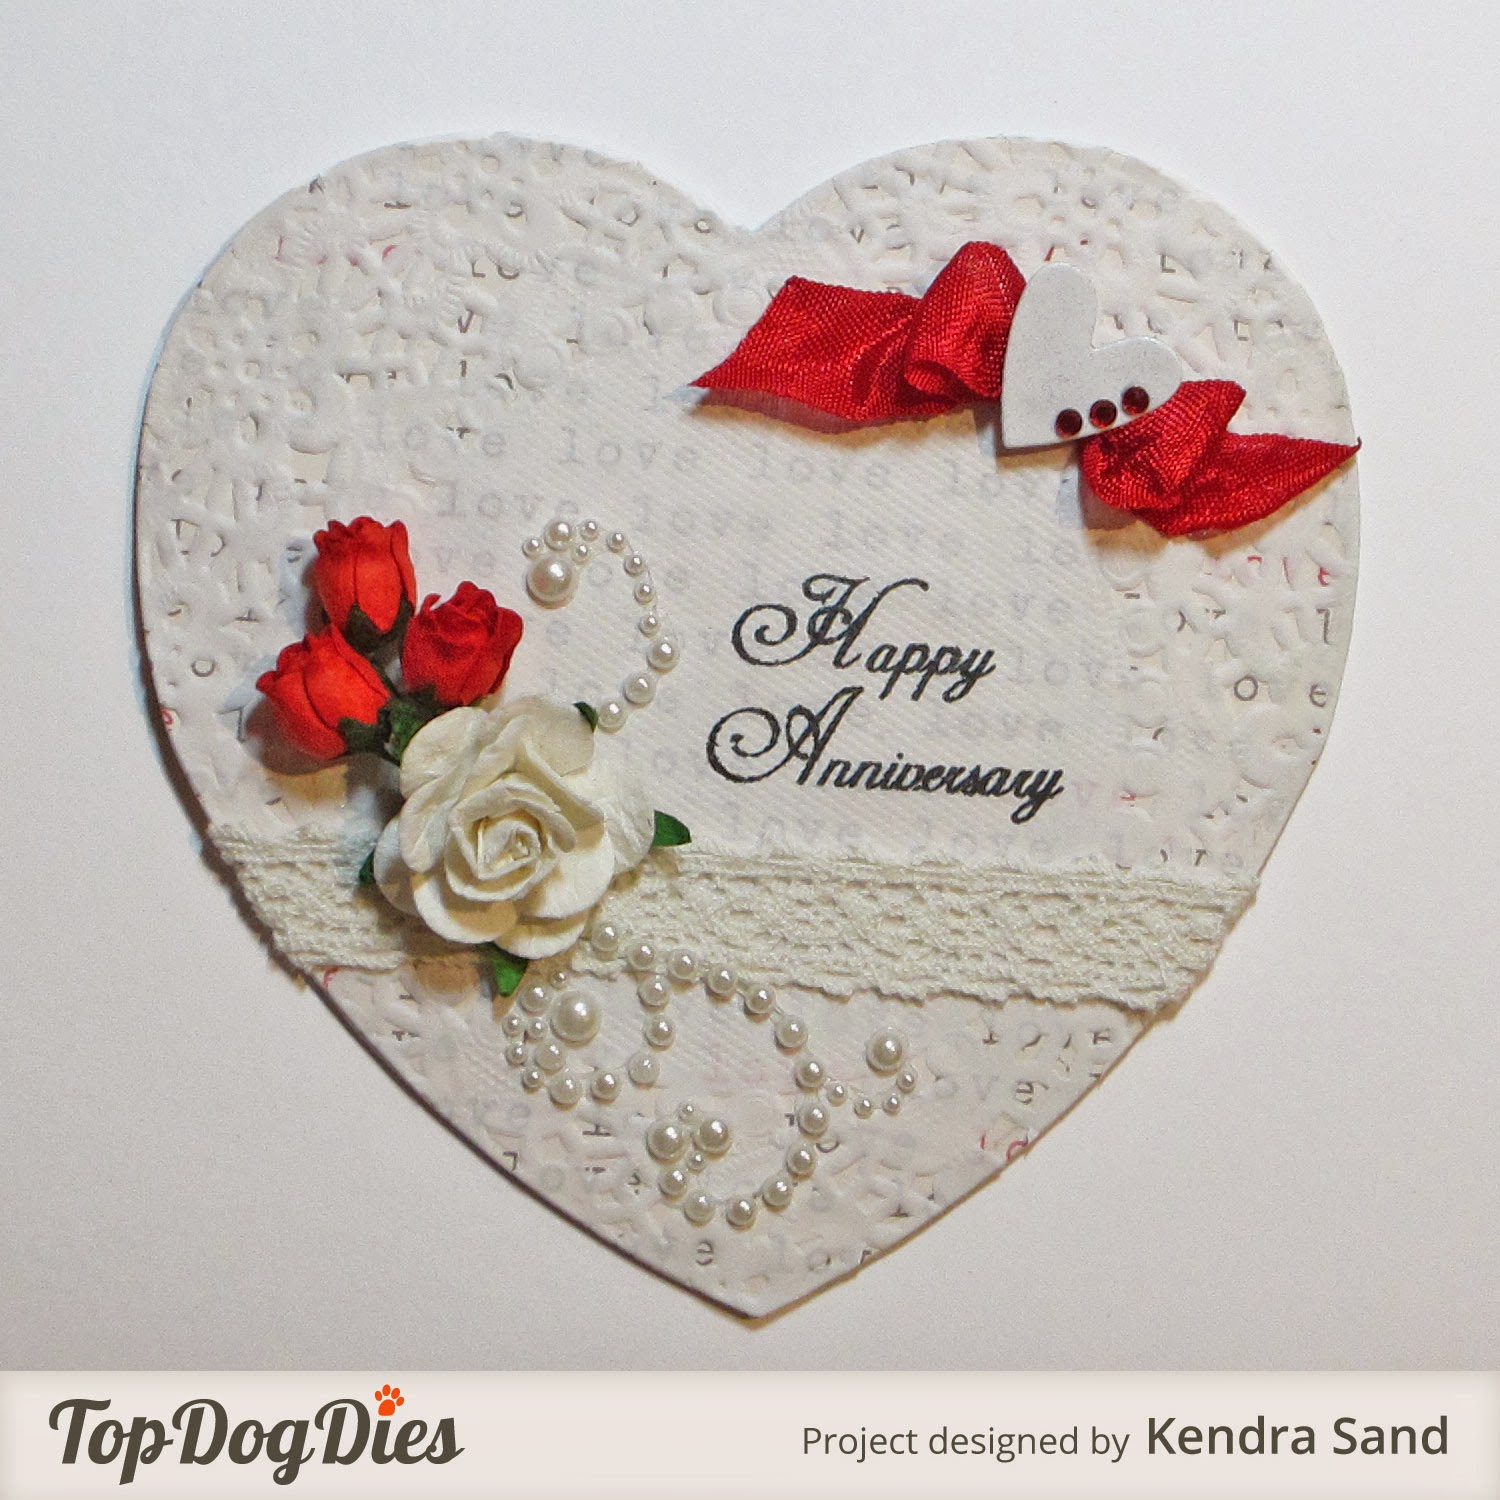 Luv 2 scrap n make cards heart shaped cards heart shaped cards kristyandbryce Choice Image